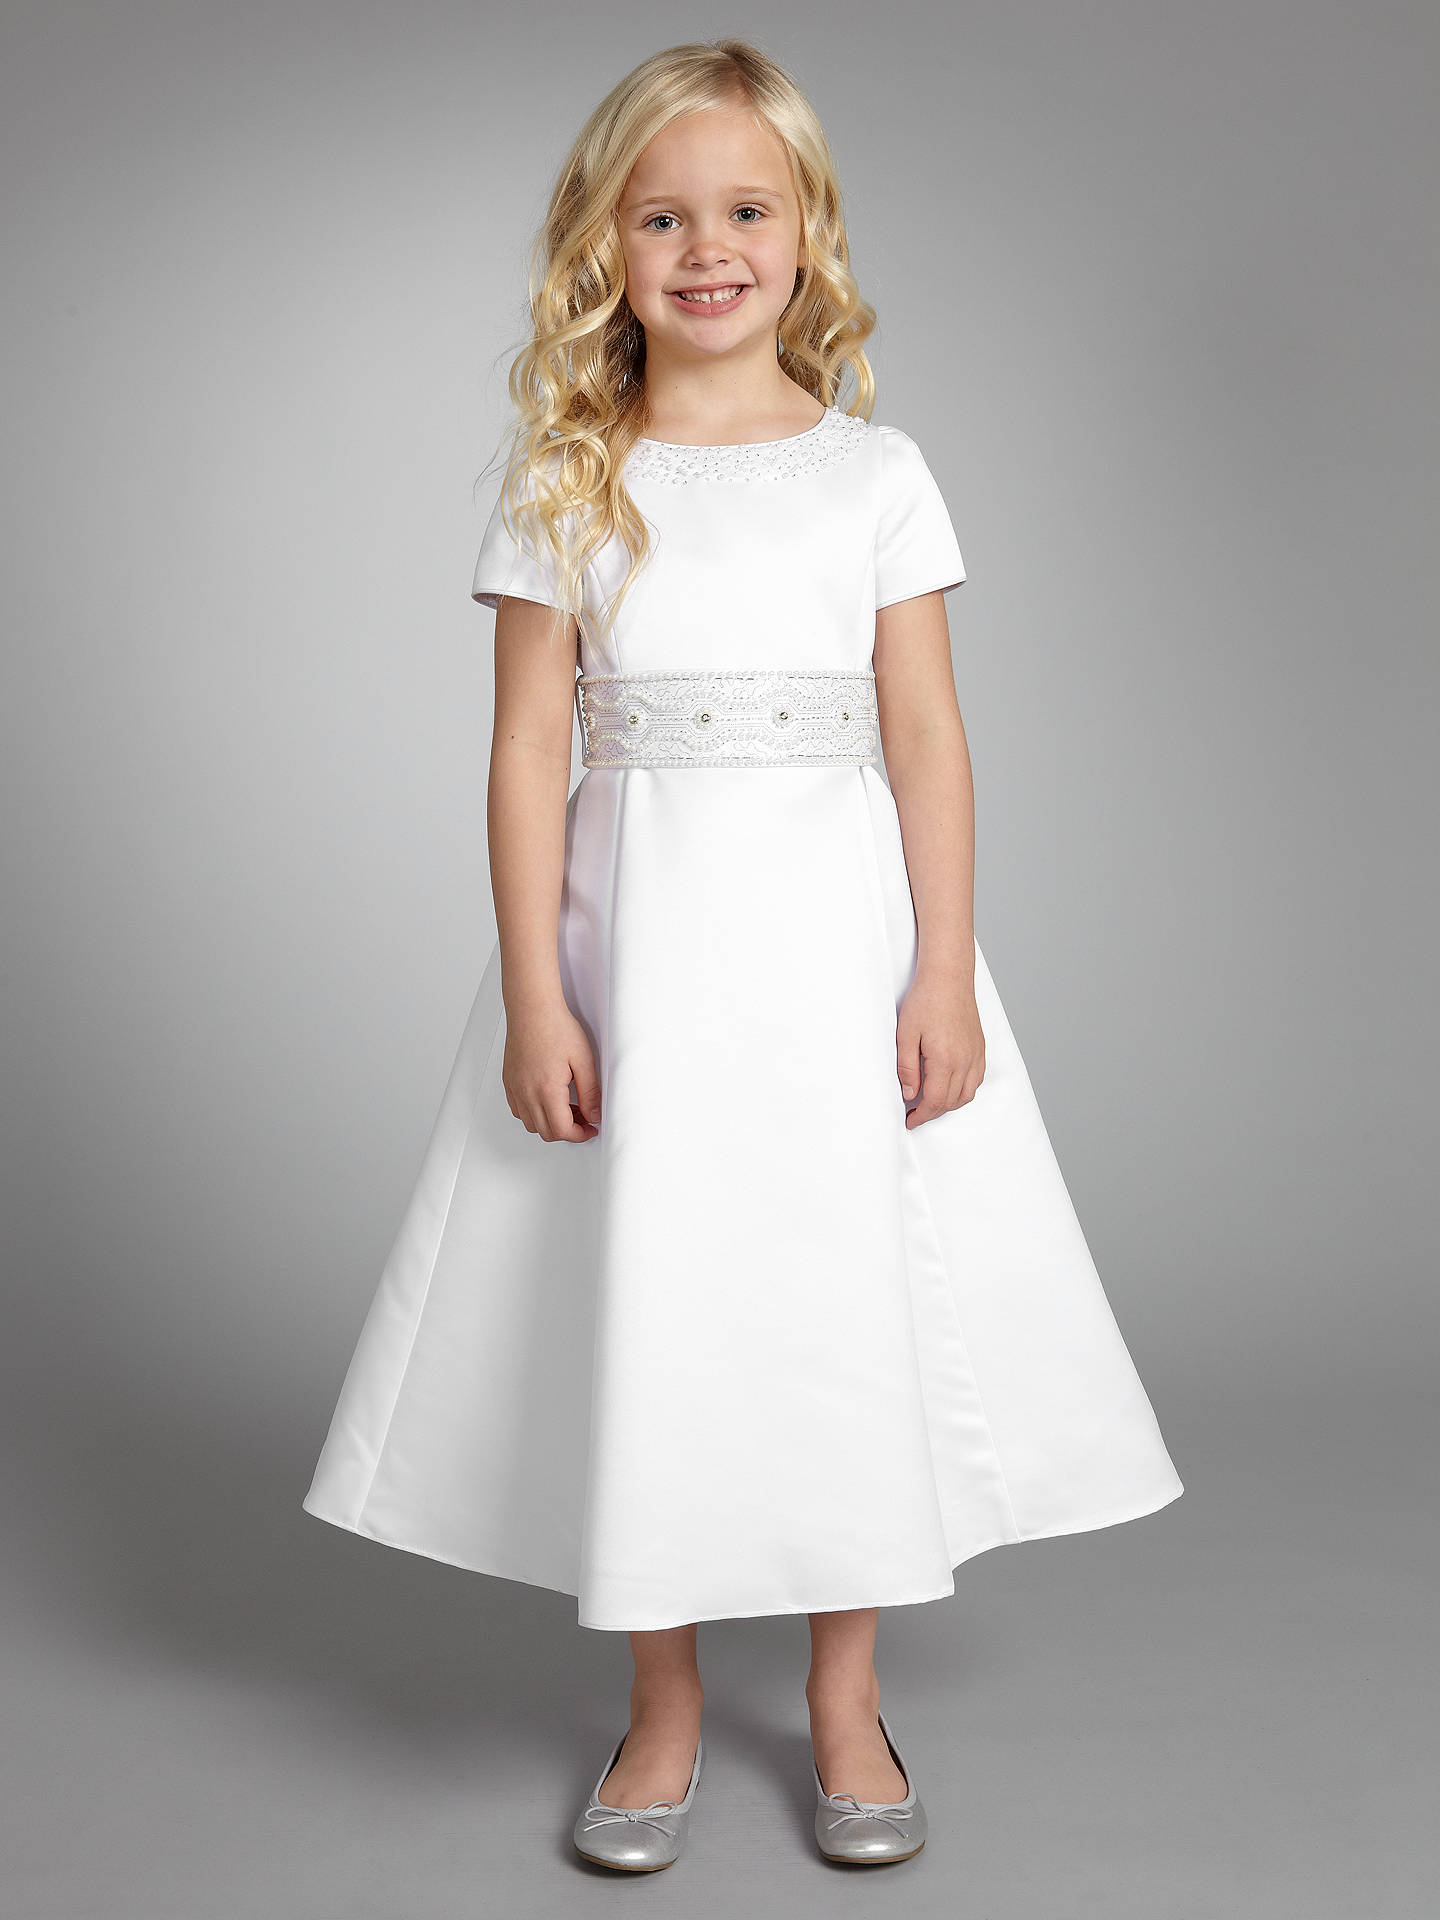 cc38569d0 Buy John Lewis Girl Holy Communion Dress, White, 4 years Online at  johnlewis.